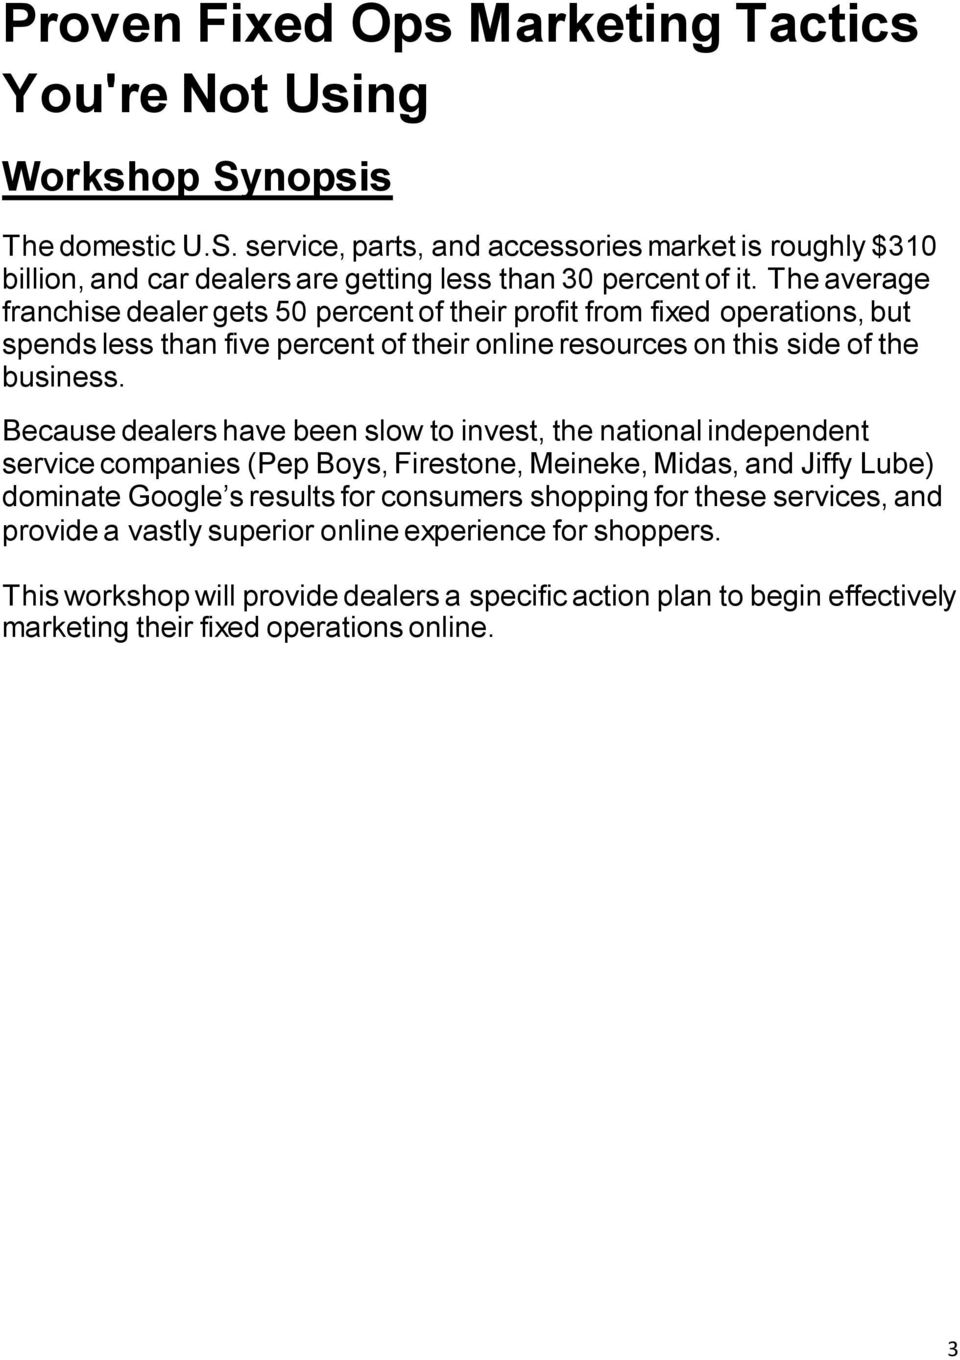 Because dealers have been slow to invest, the national independent service companies (Pep Boys, Firestone, Meineke, Midas, and Jiffy Lube) dominate Google s results for consumers shopping for